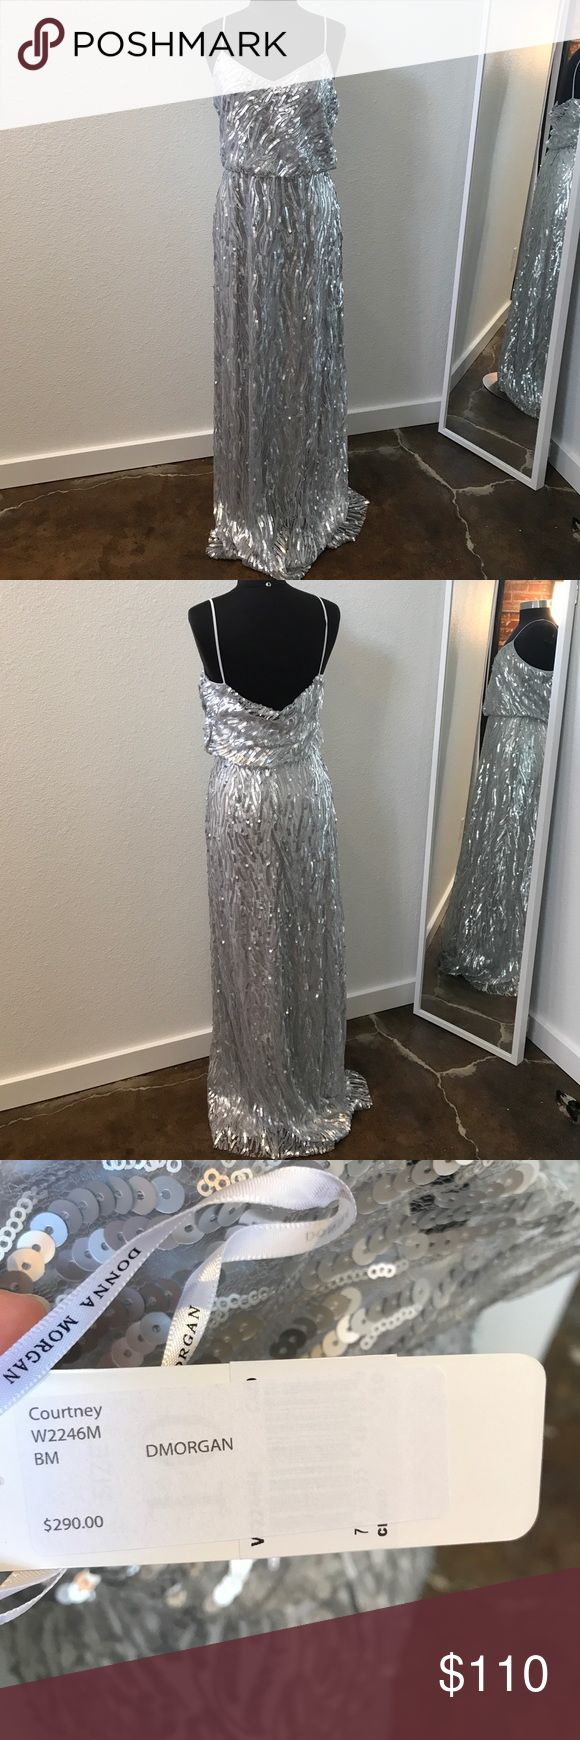 Donna Morgan Silver sequined tank dress Donna Morgan silver sequined tank dress tag says 10 but fits like an 8 and measures 36 1/2 29 39 and has not been altered Donna Morgan Dresses